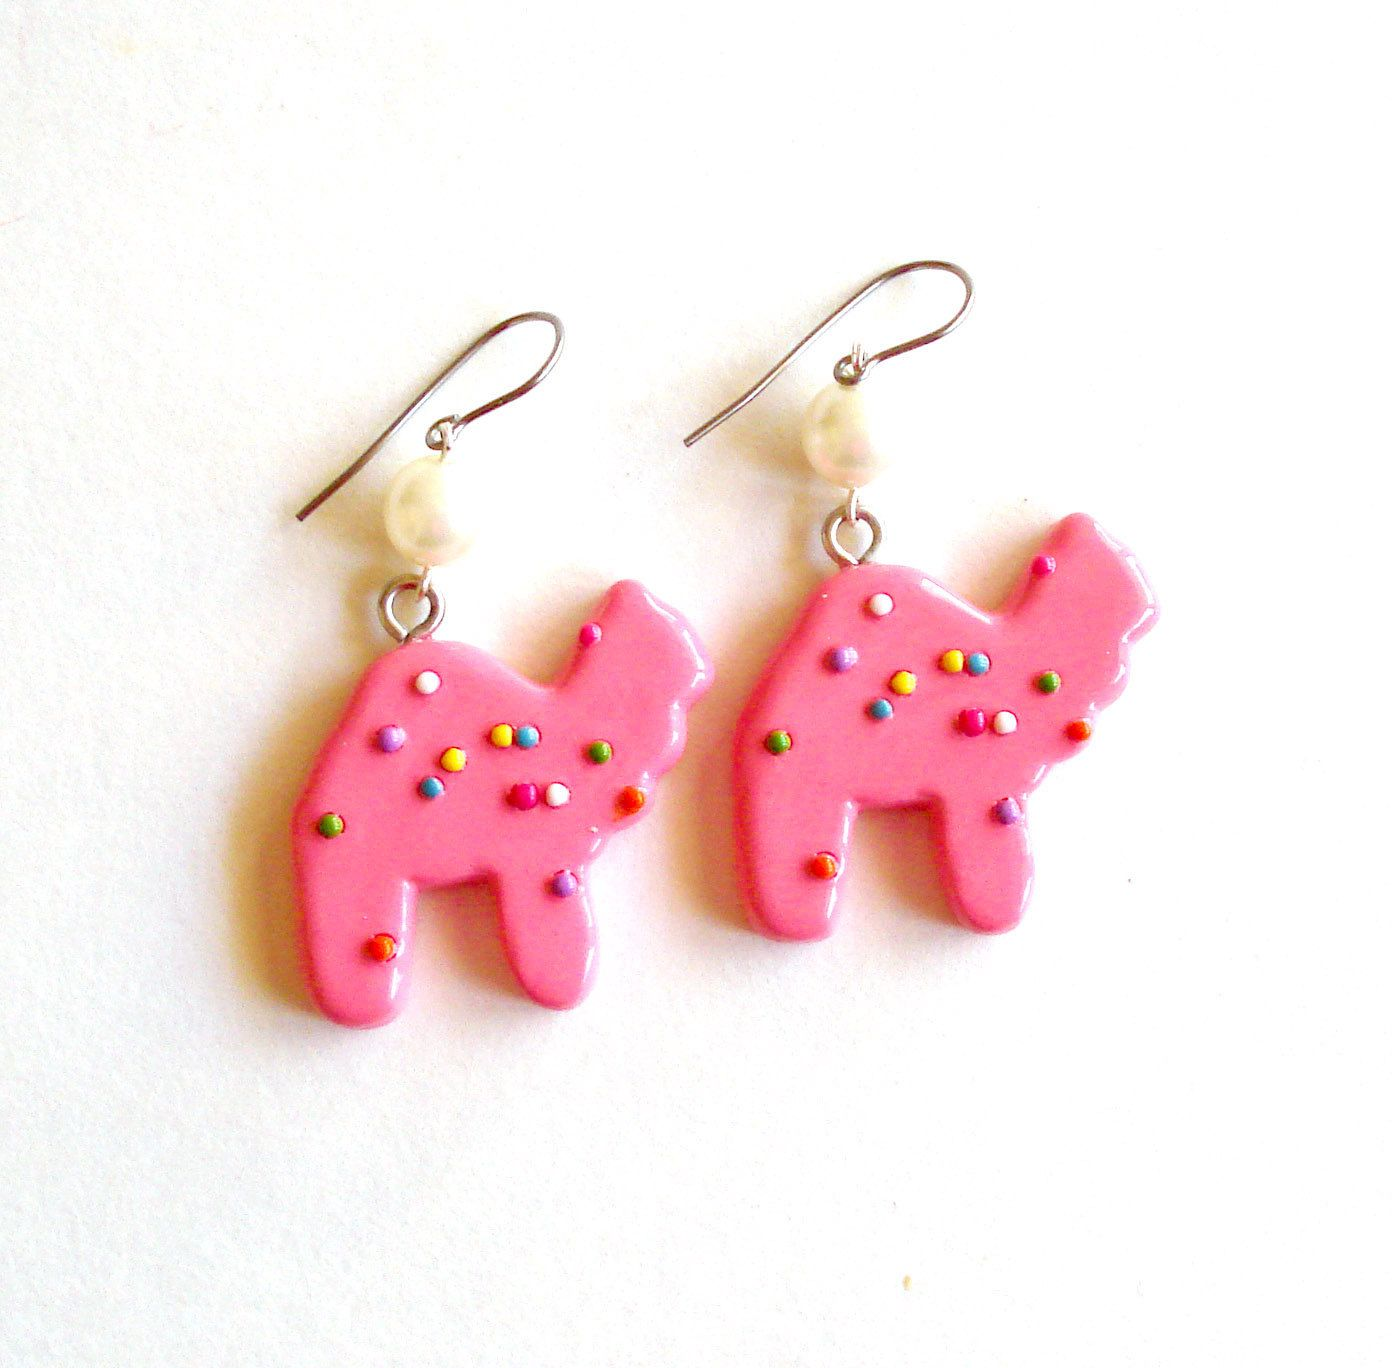 Photo of Circus Animal Cookies Earrings Frosted Animal Cookie Earring Animal Crackers Kawaii Pink Rainbow Sprinkles Cookie Pin Up Jewelry Mini Food